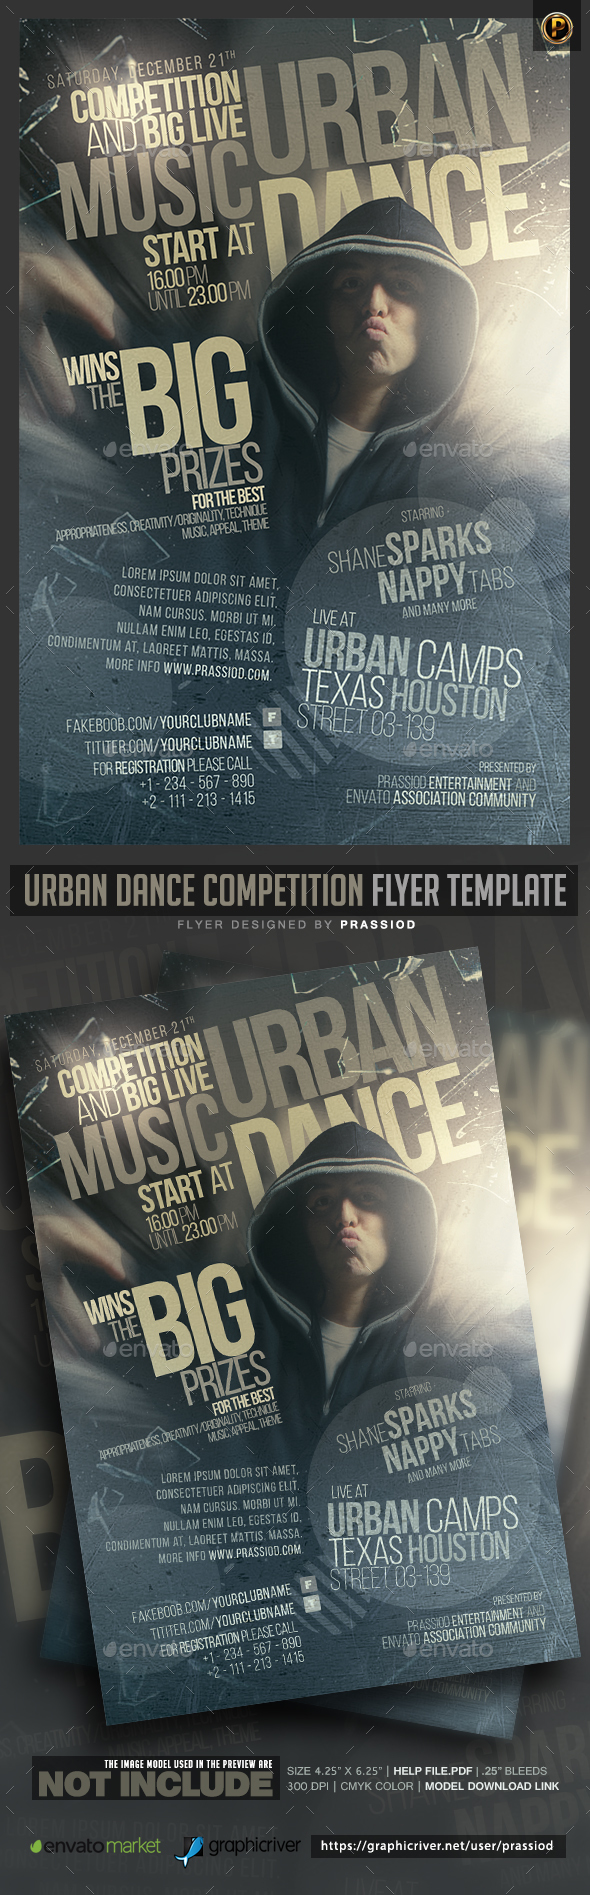 Urban Dance Competition Flyer Template